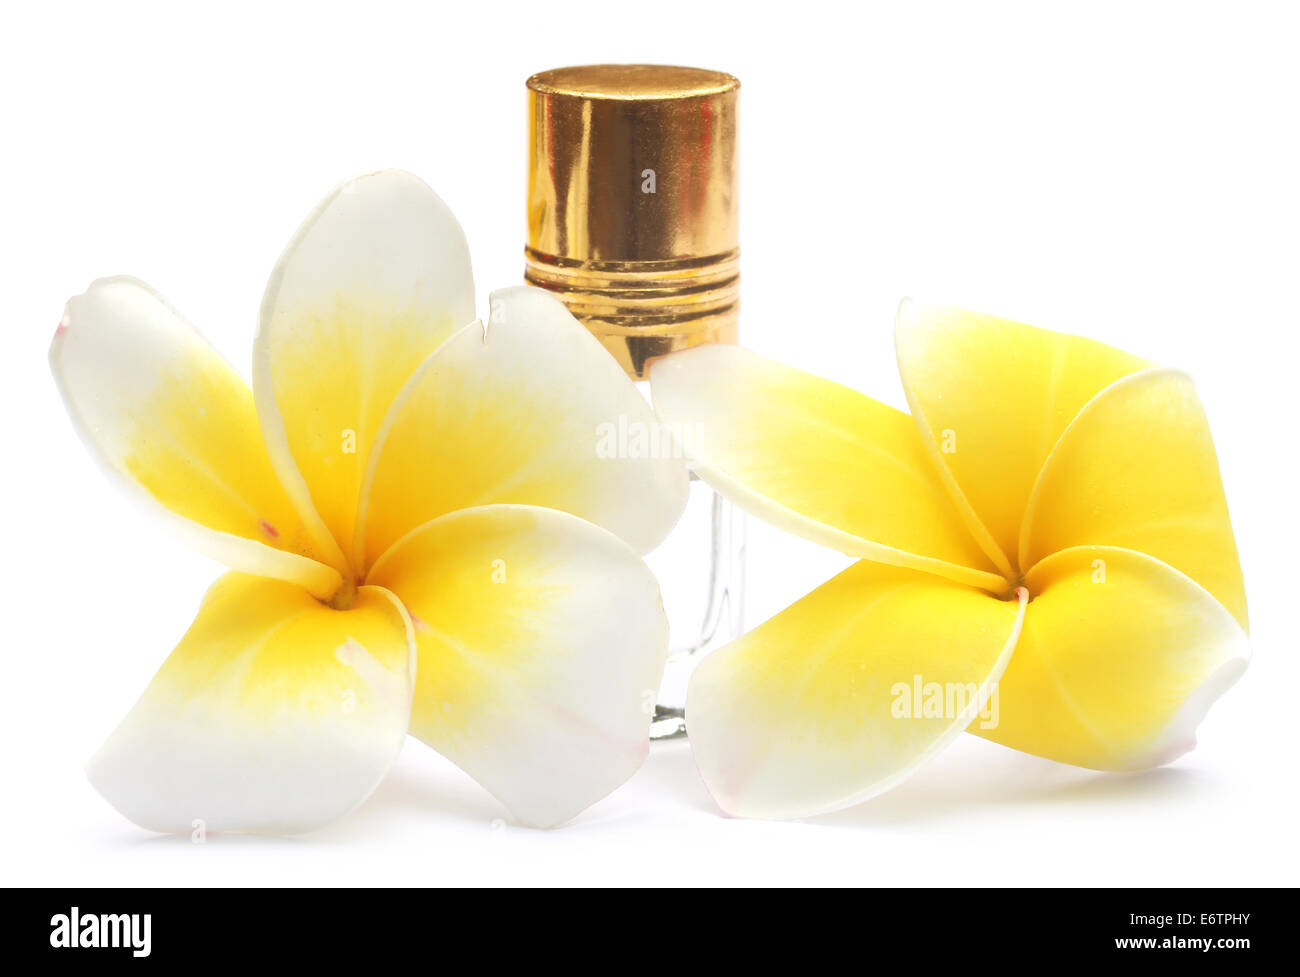 Tropical Frangipani with perfume bottle over white background - Stock Image